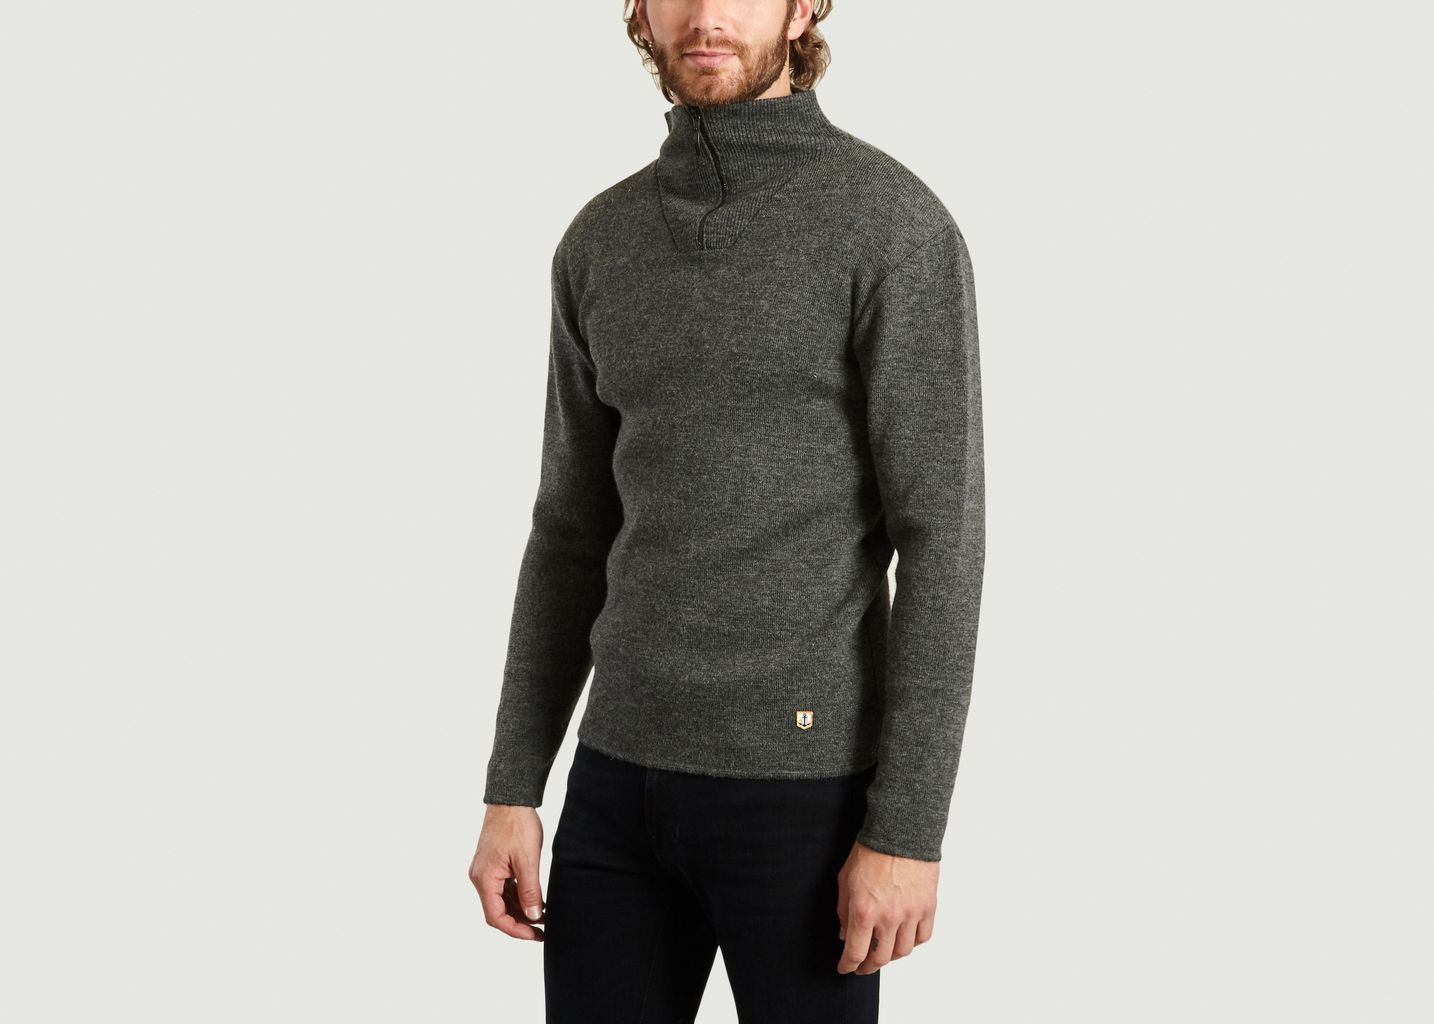 Pull Camionneur  - Armor Lux